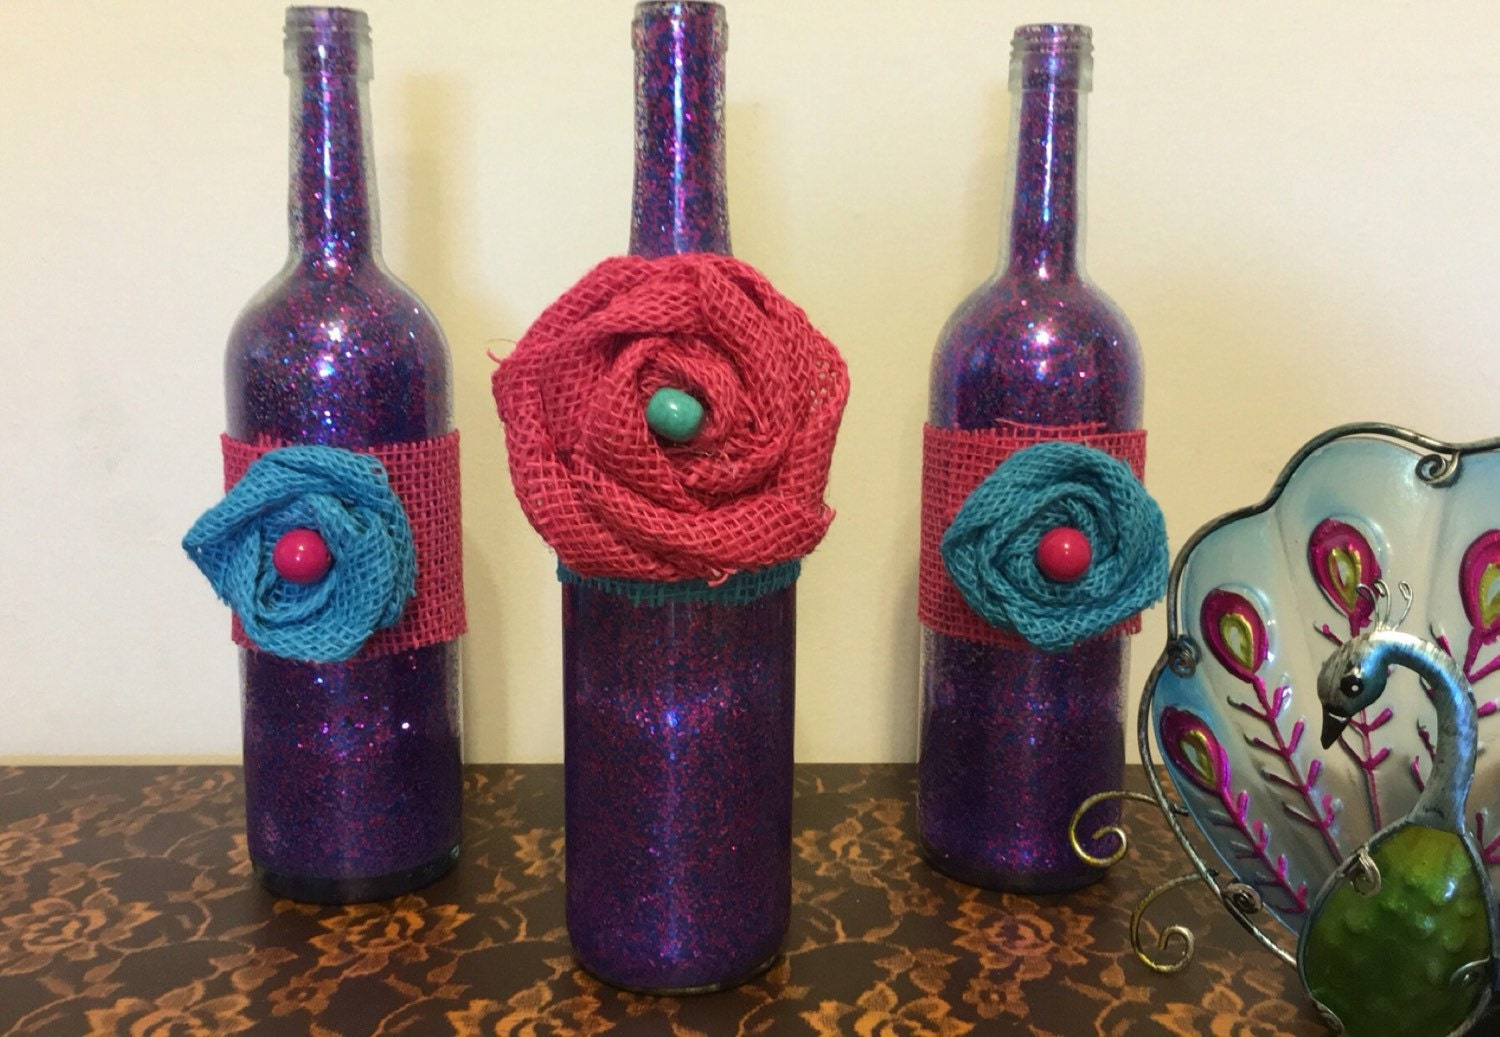 Purple pink glitter wine bottle decor with pink blue burlap for Decorating wine bottles with glitter